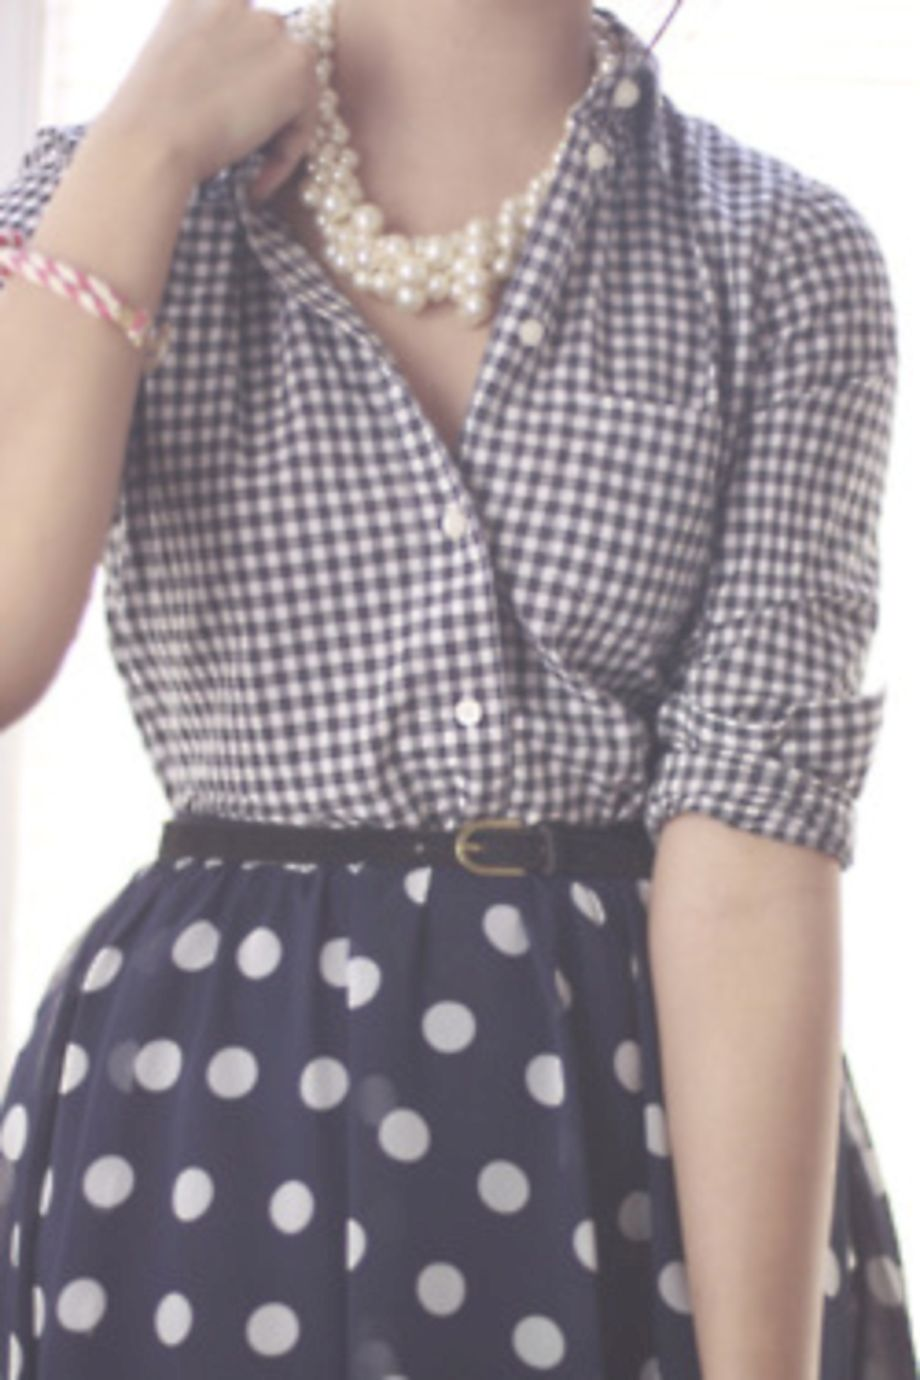 Polkadot short dress 45